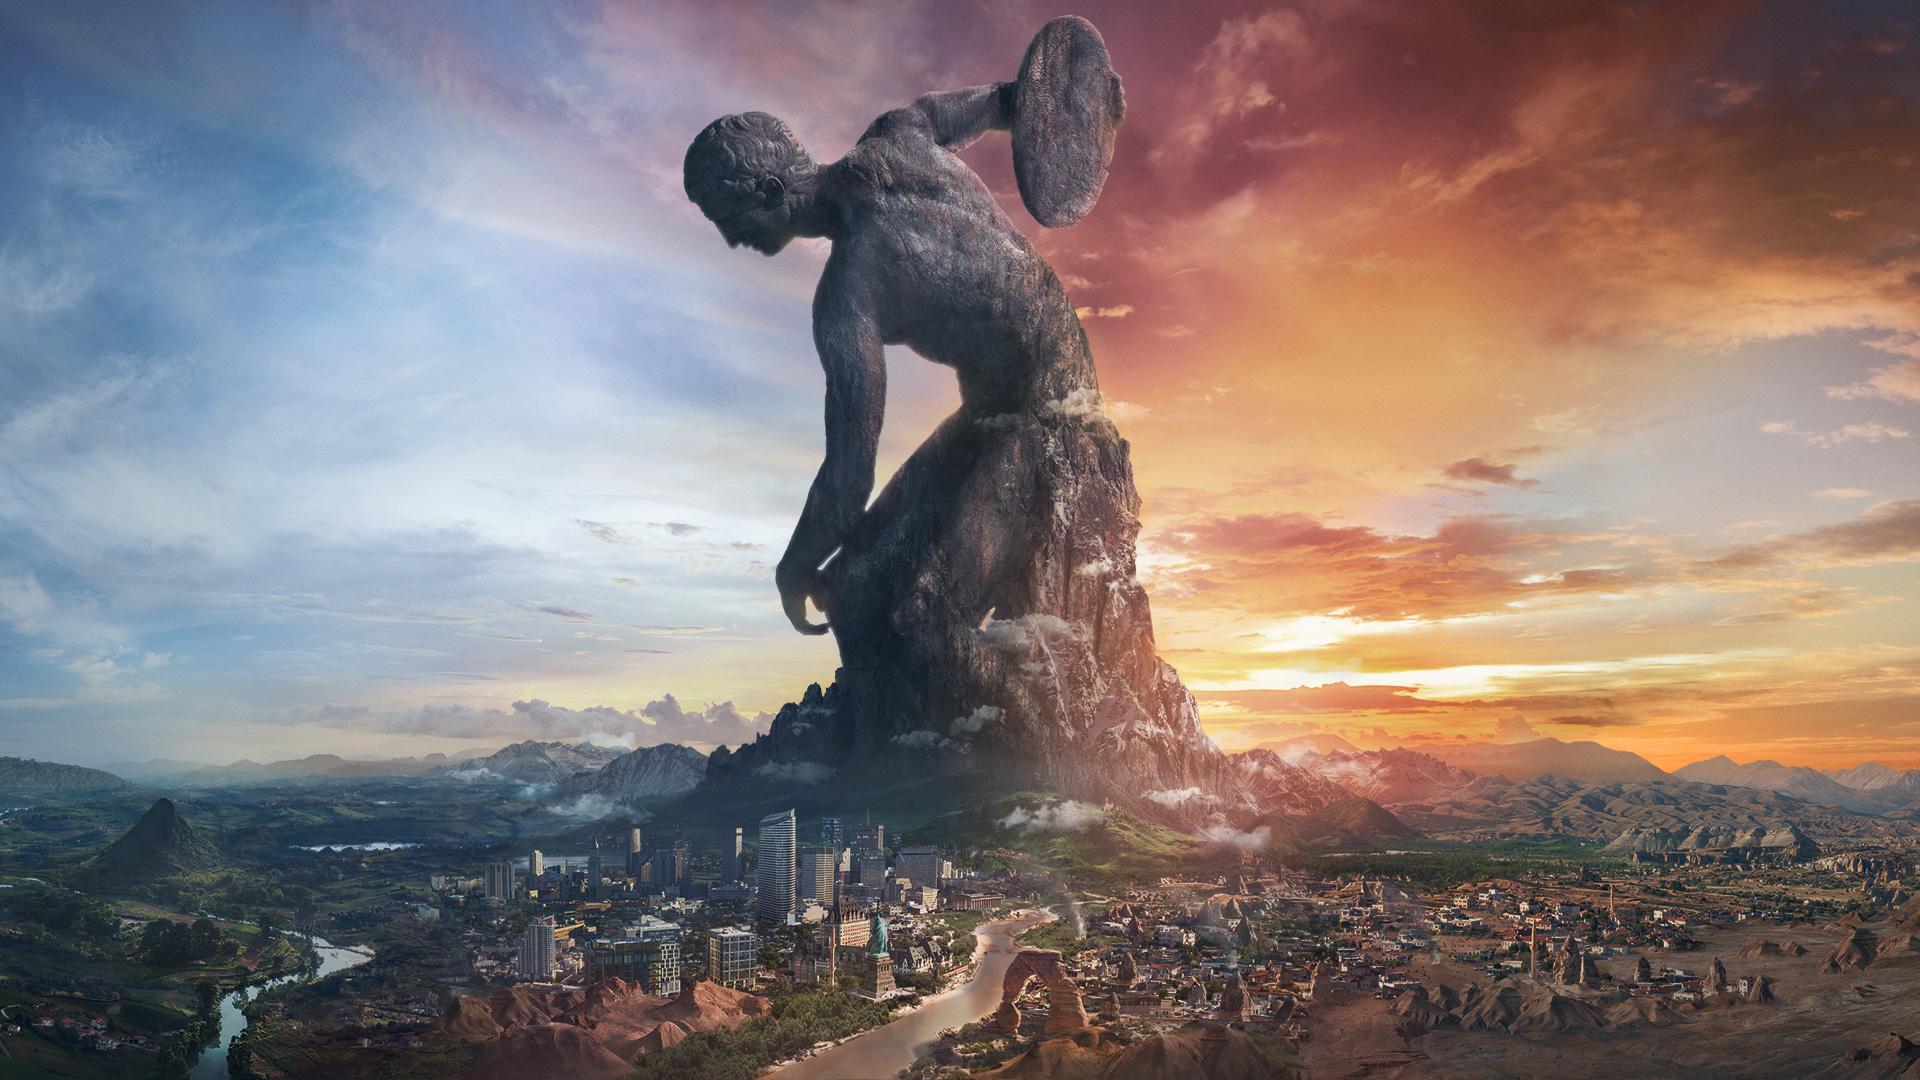 Civ 6's New Frontier Pass drew more active players than either expansion